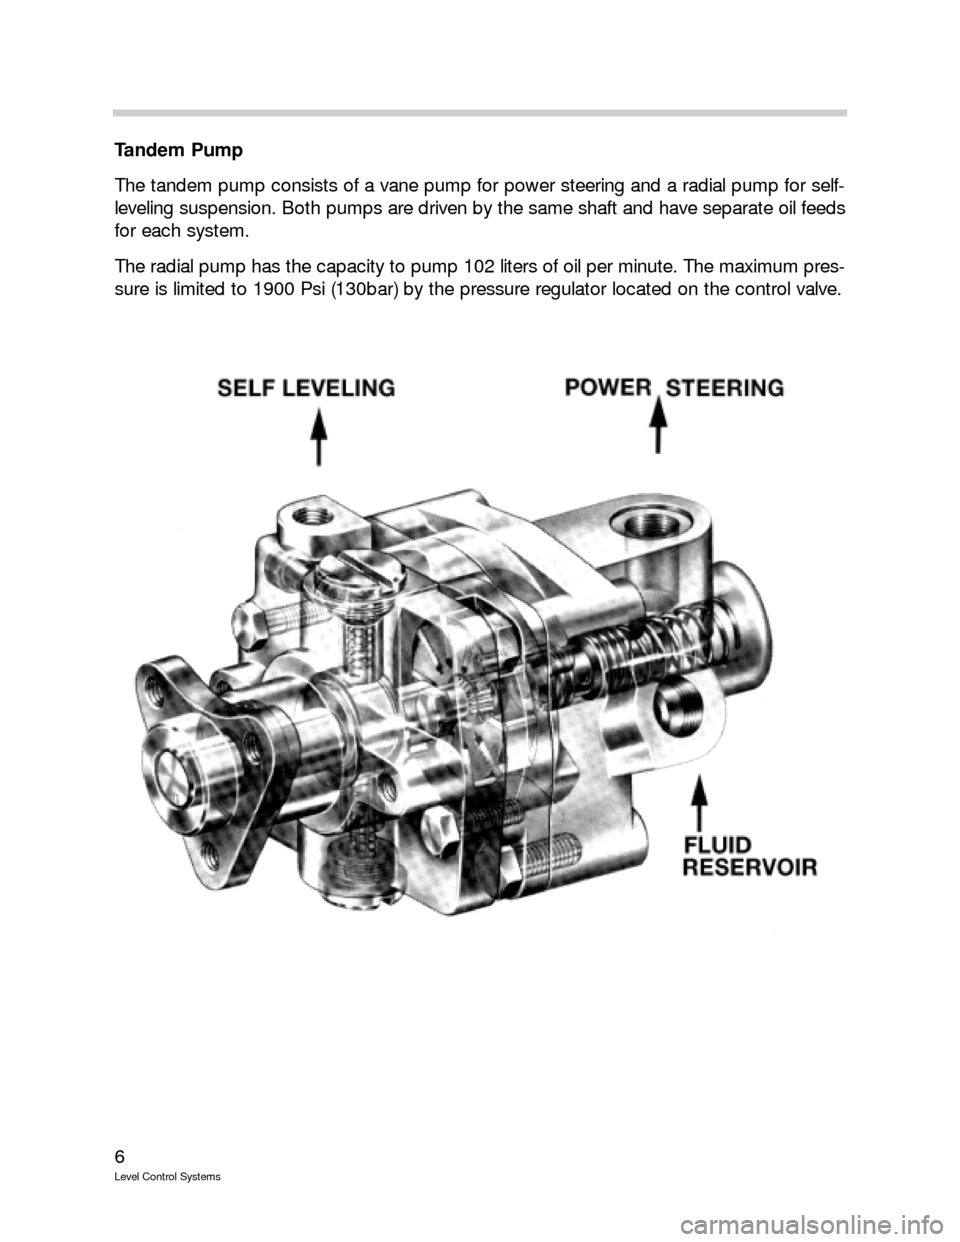 BMW 525I TOURING 1989 E34 Level Control System Manual, Page 6